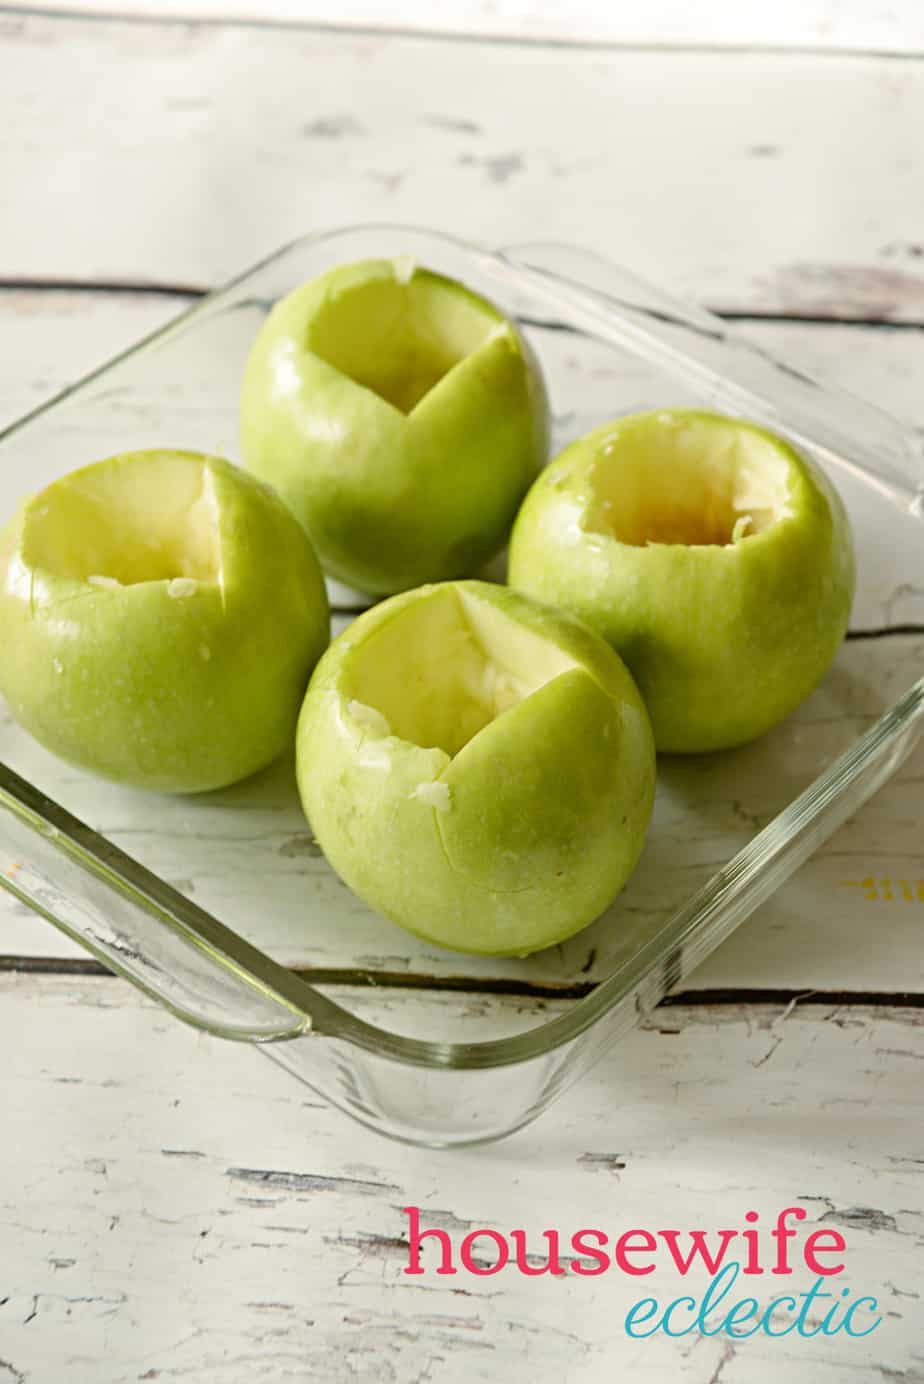 Brown Sugar Stuffed Baked Apples : Scooped Out Apples